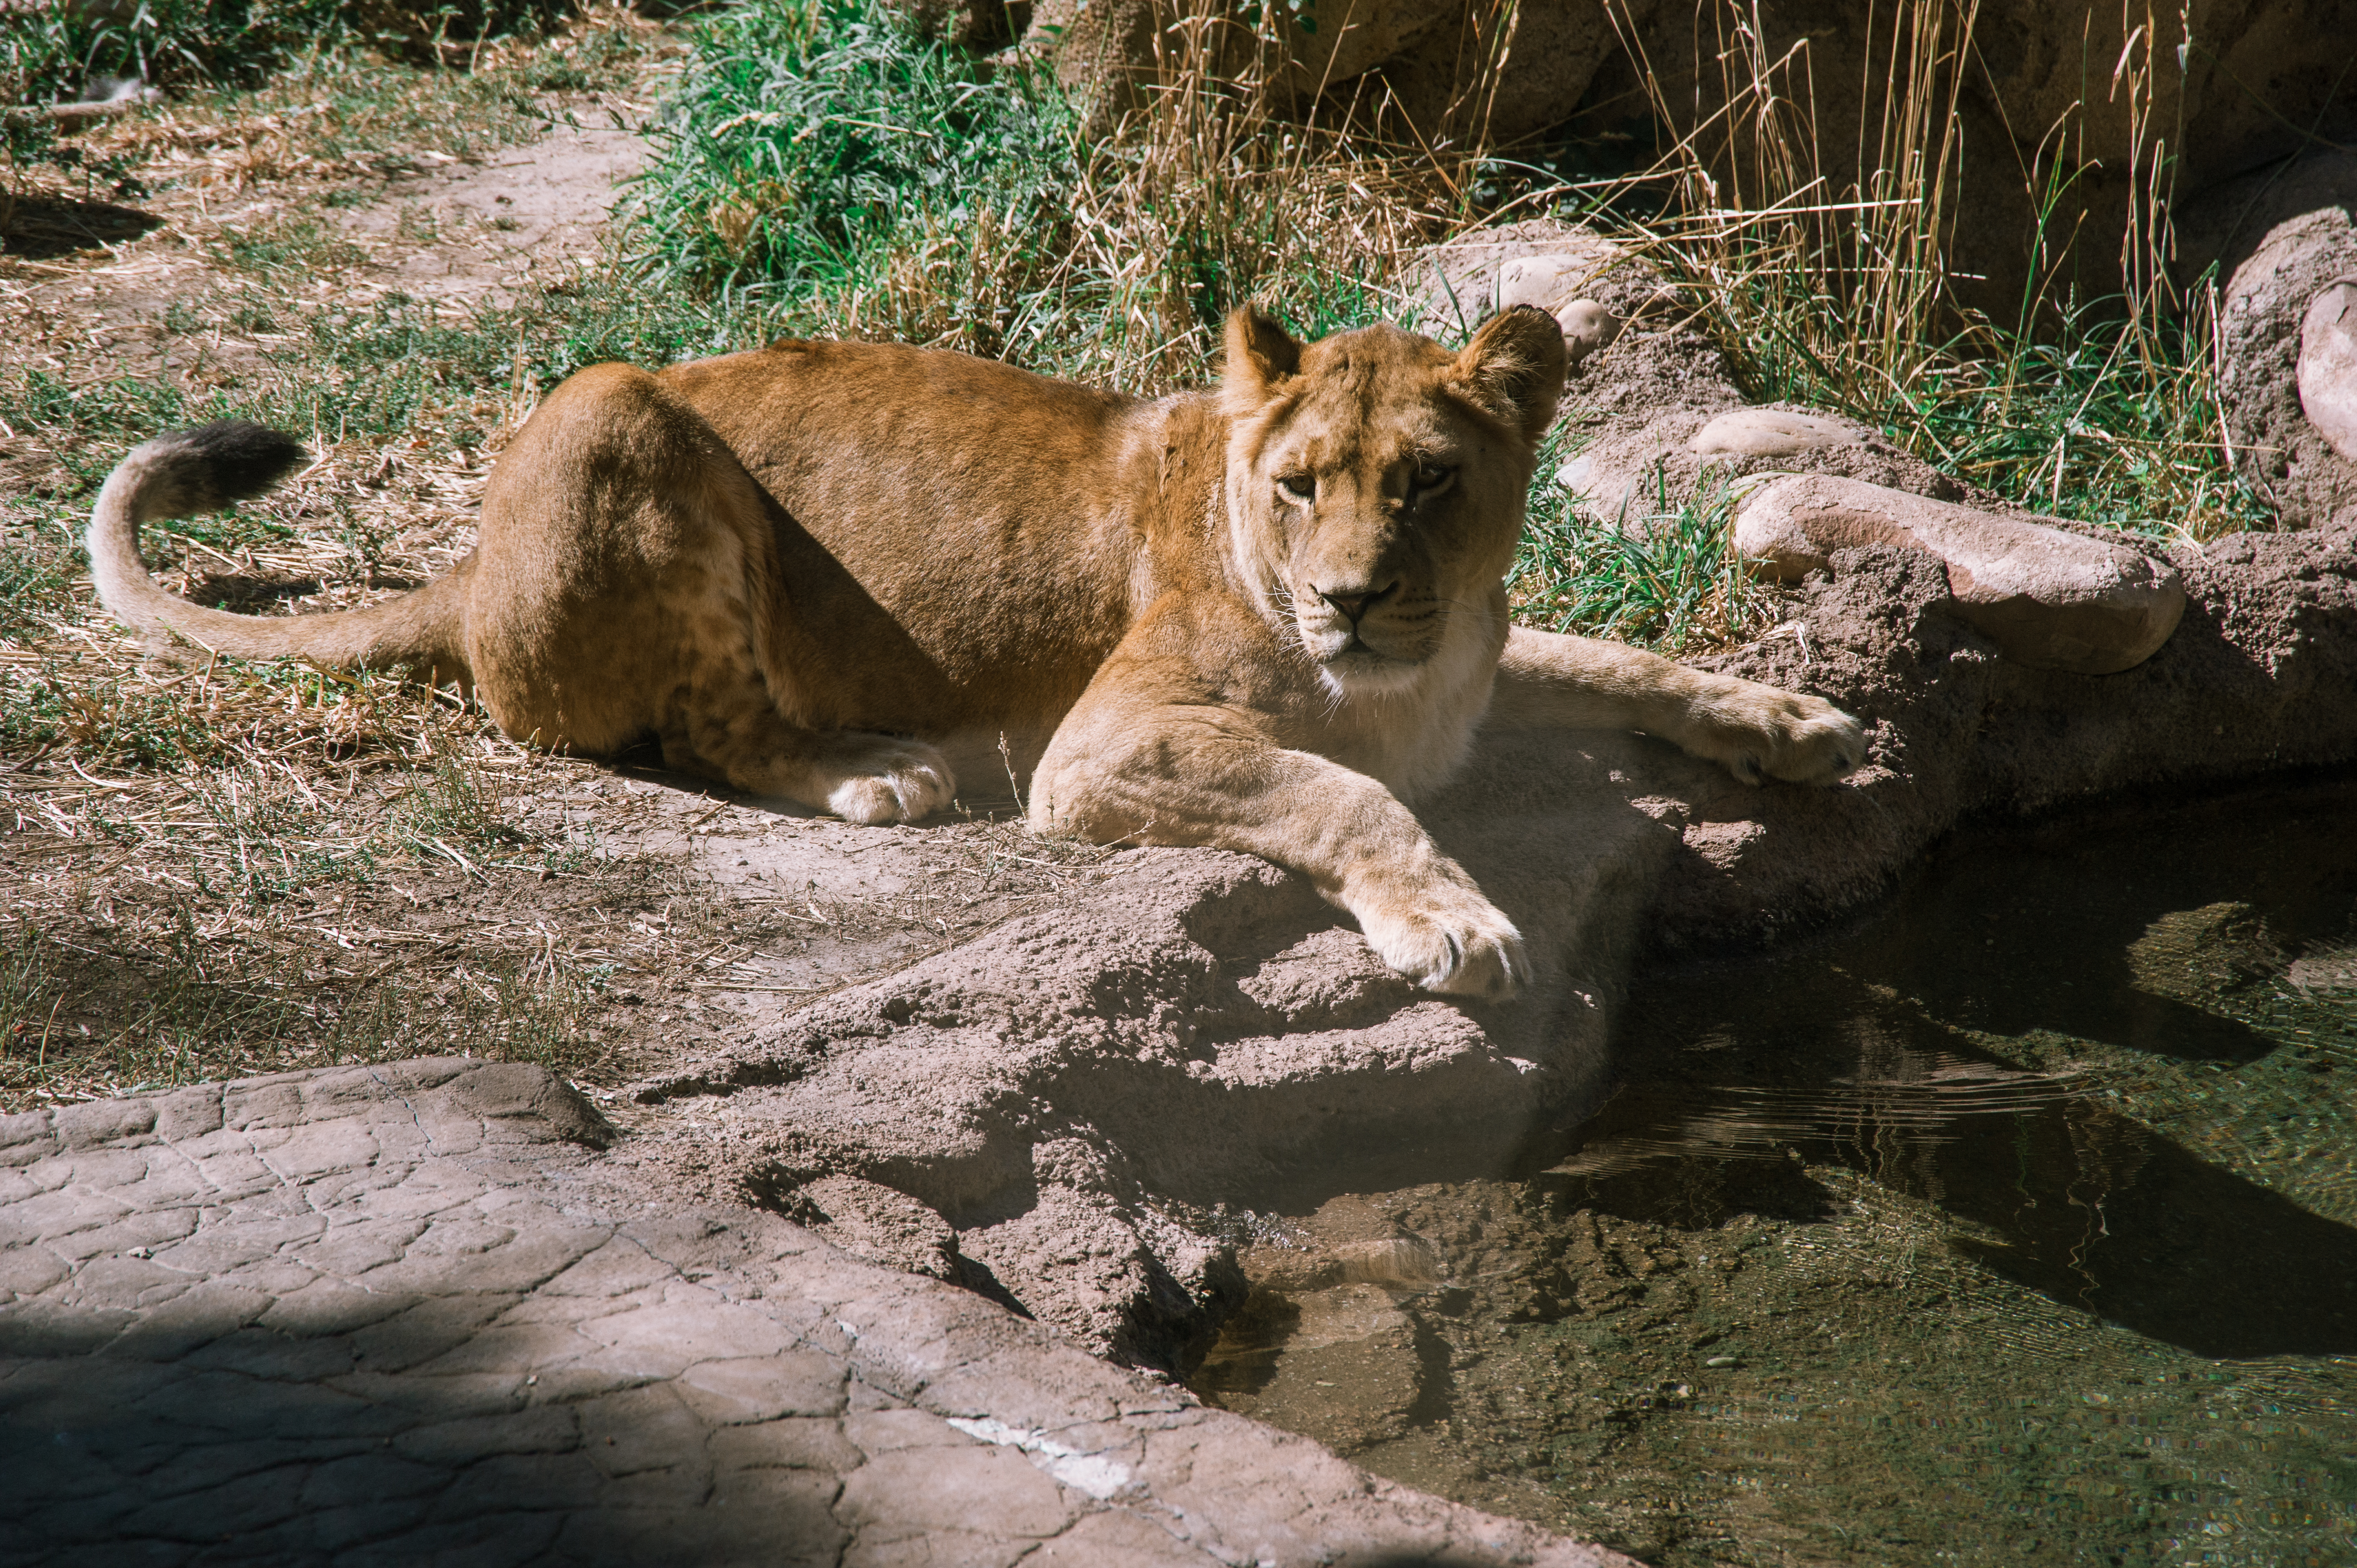 a lionness stares speculatively across a small man made pond